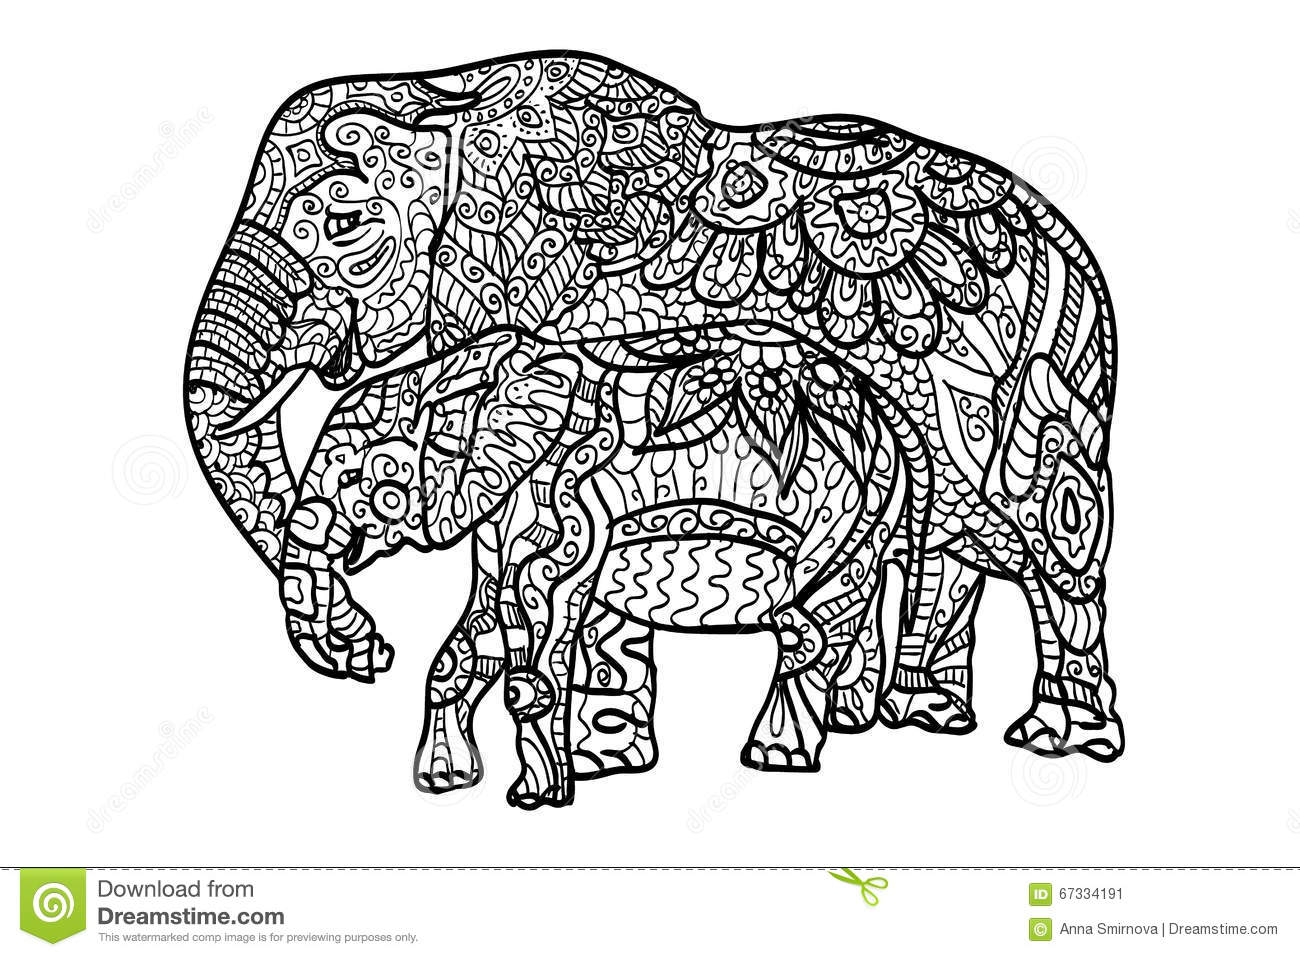 Coloring pages relaxing - More Similar Stock Images Of Relaxing Coloring